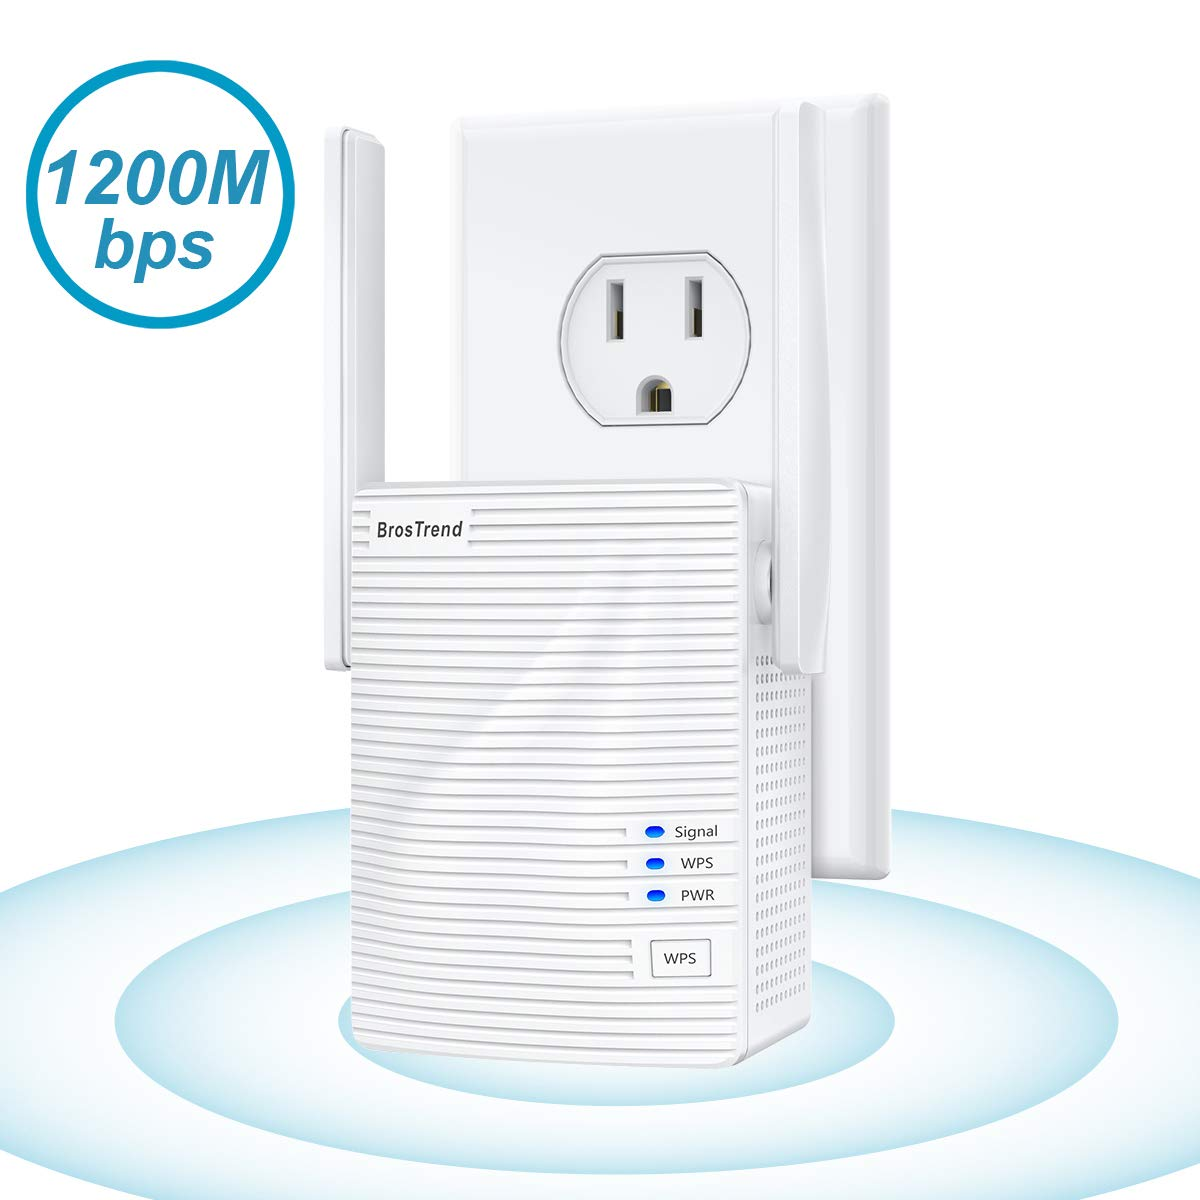 BrosTrend AC1200 WiFi Range Extender, 1200Mbps   Add Coverage up to 1200+ sq.ft.   Extend 2.4 & 5GHz Dual Band WiFi   Signal Booster, Repeater   Also Work as Wireless Bridge, Access Point, Easy Setup